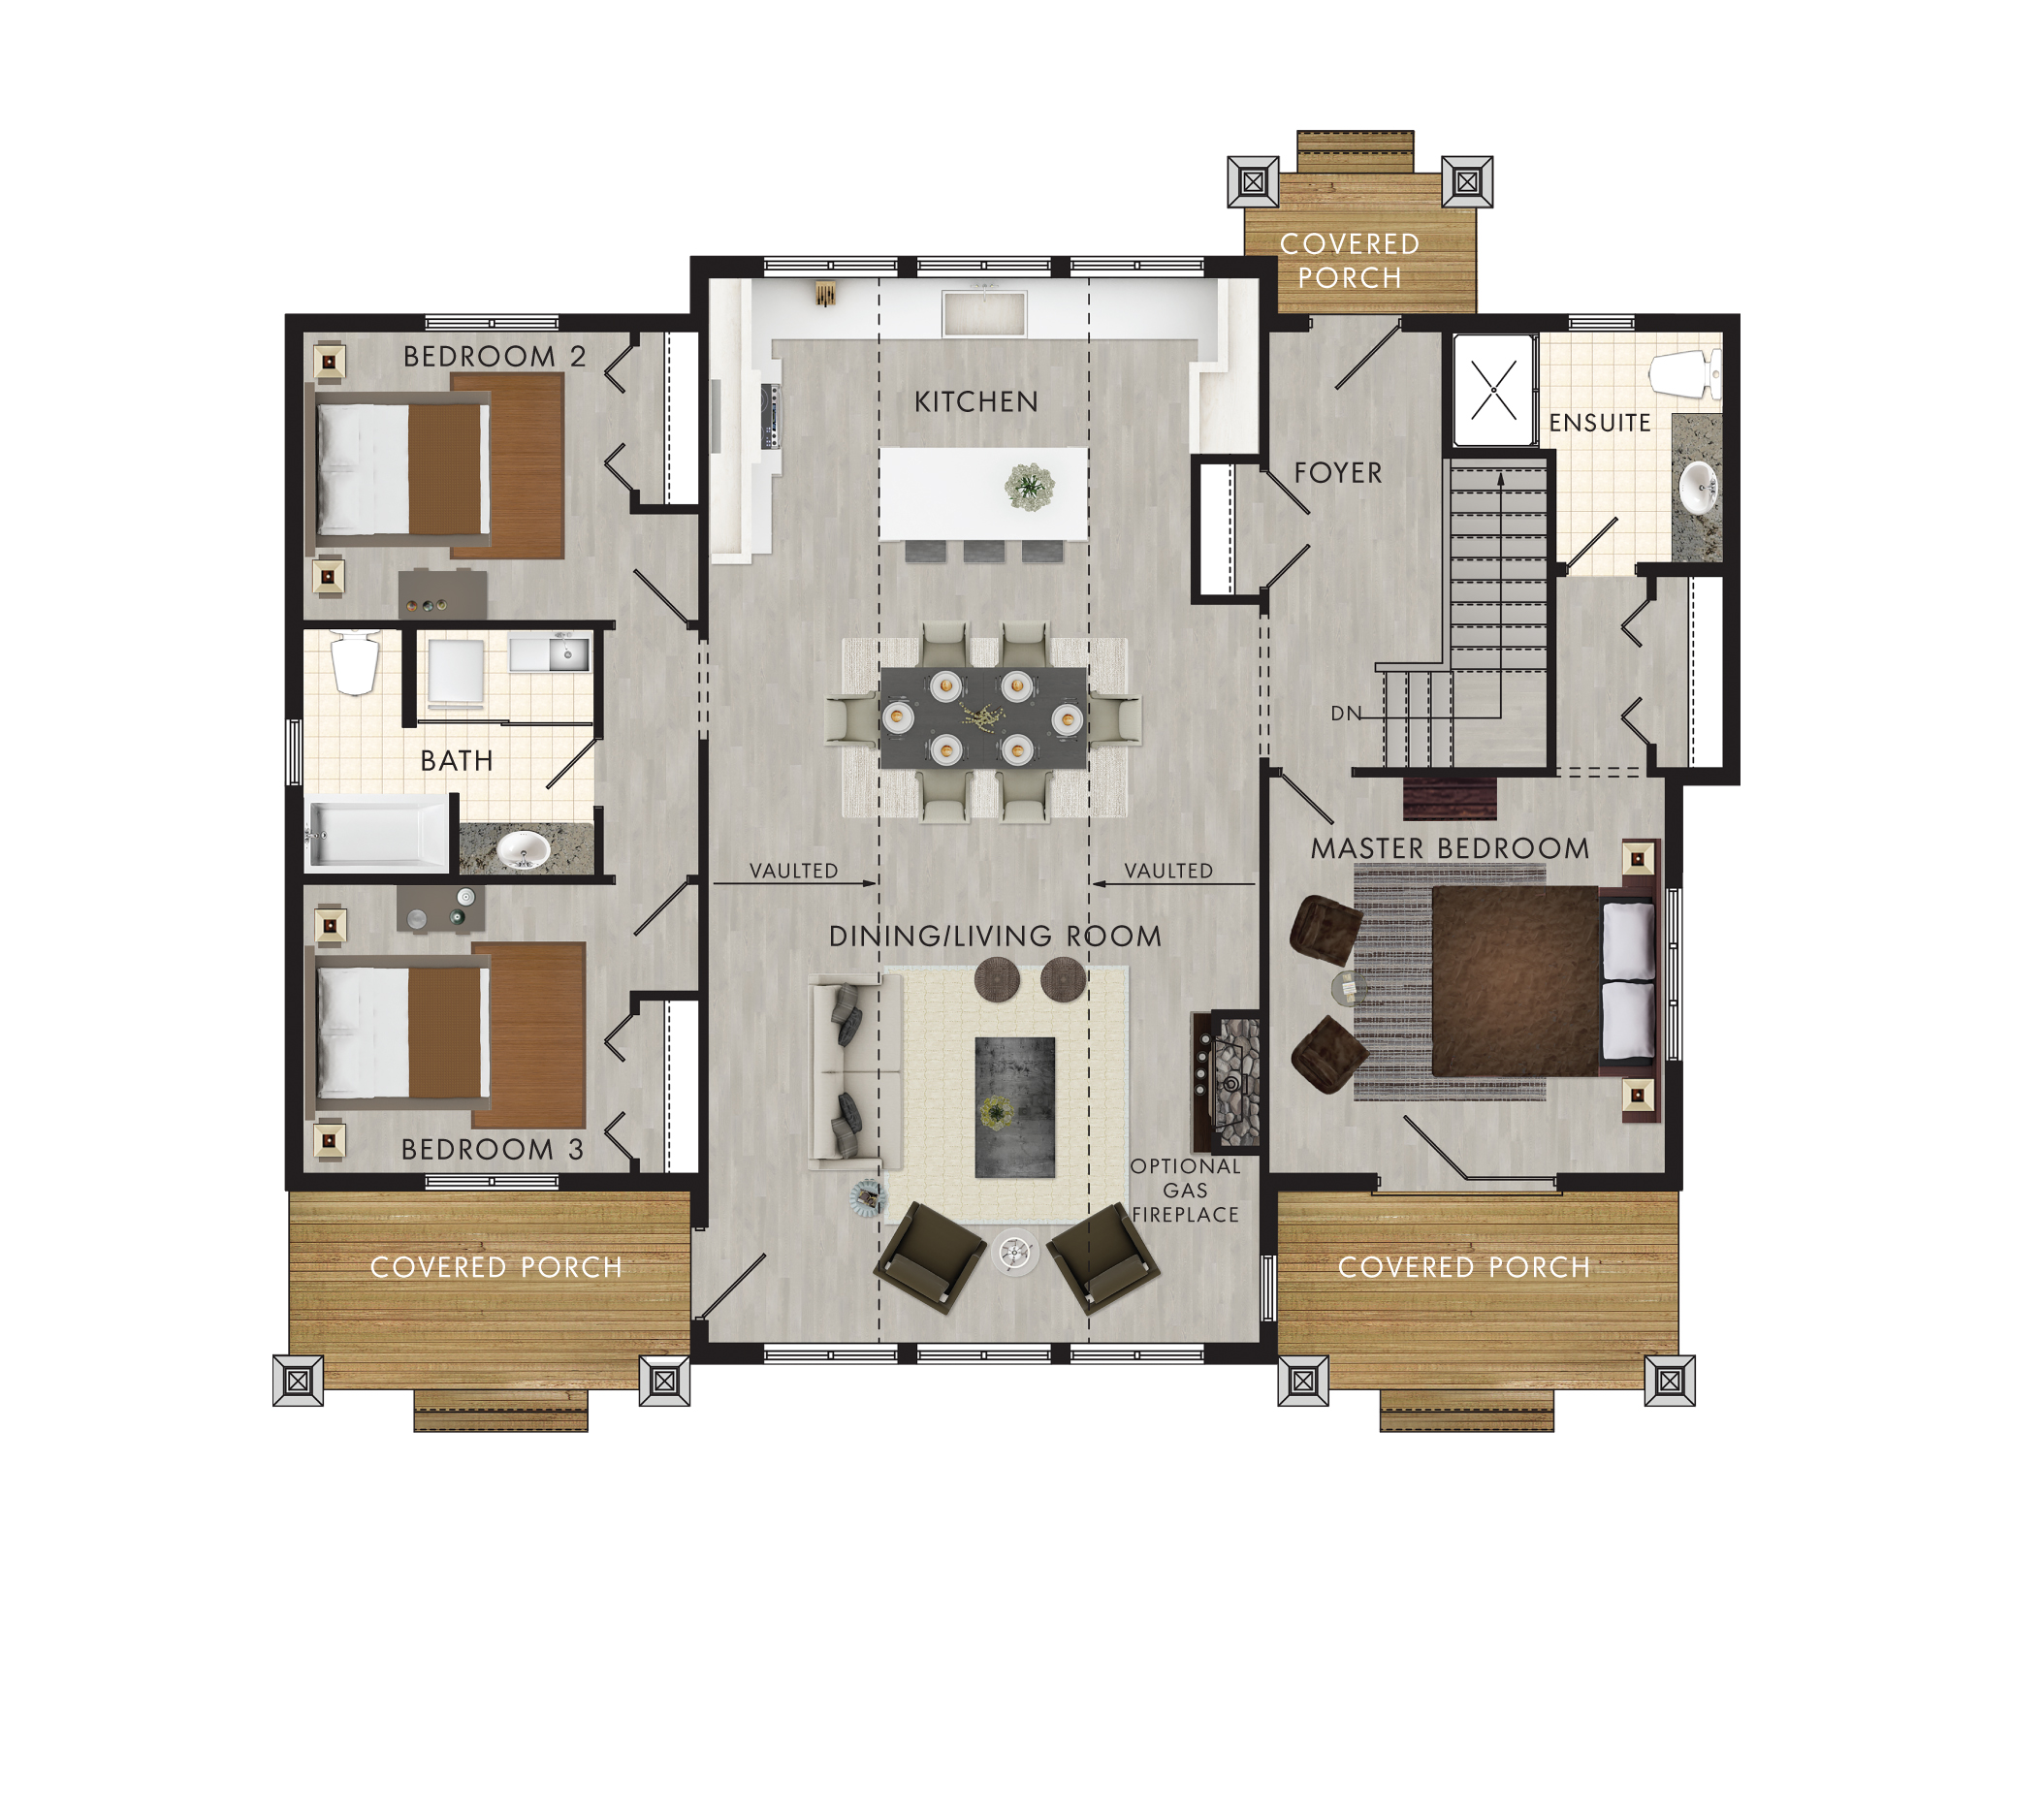 Beaver Homes and Cottages Dorset III – Beaver Homes Floor Plans